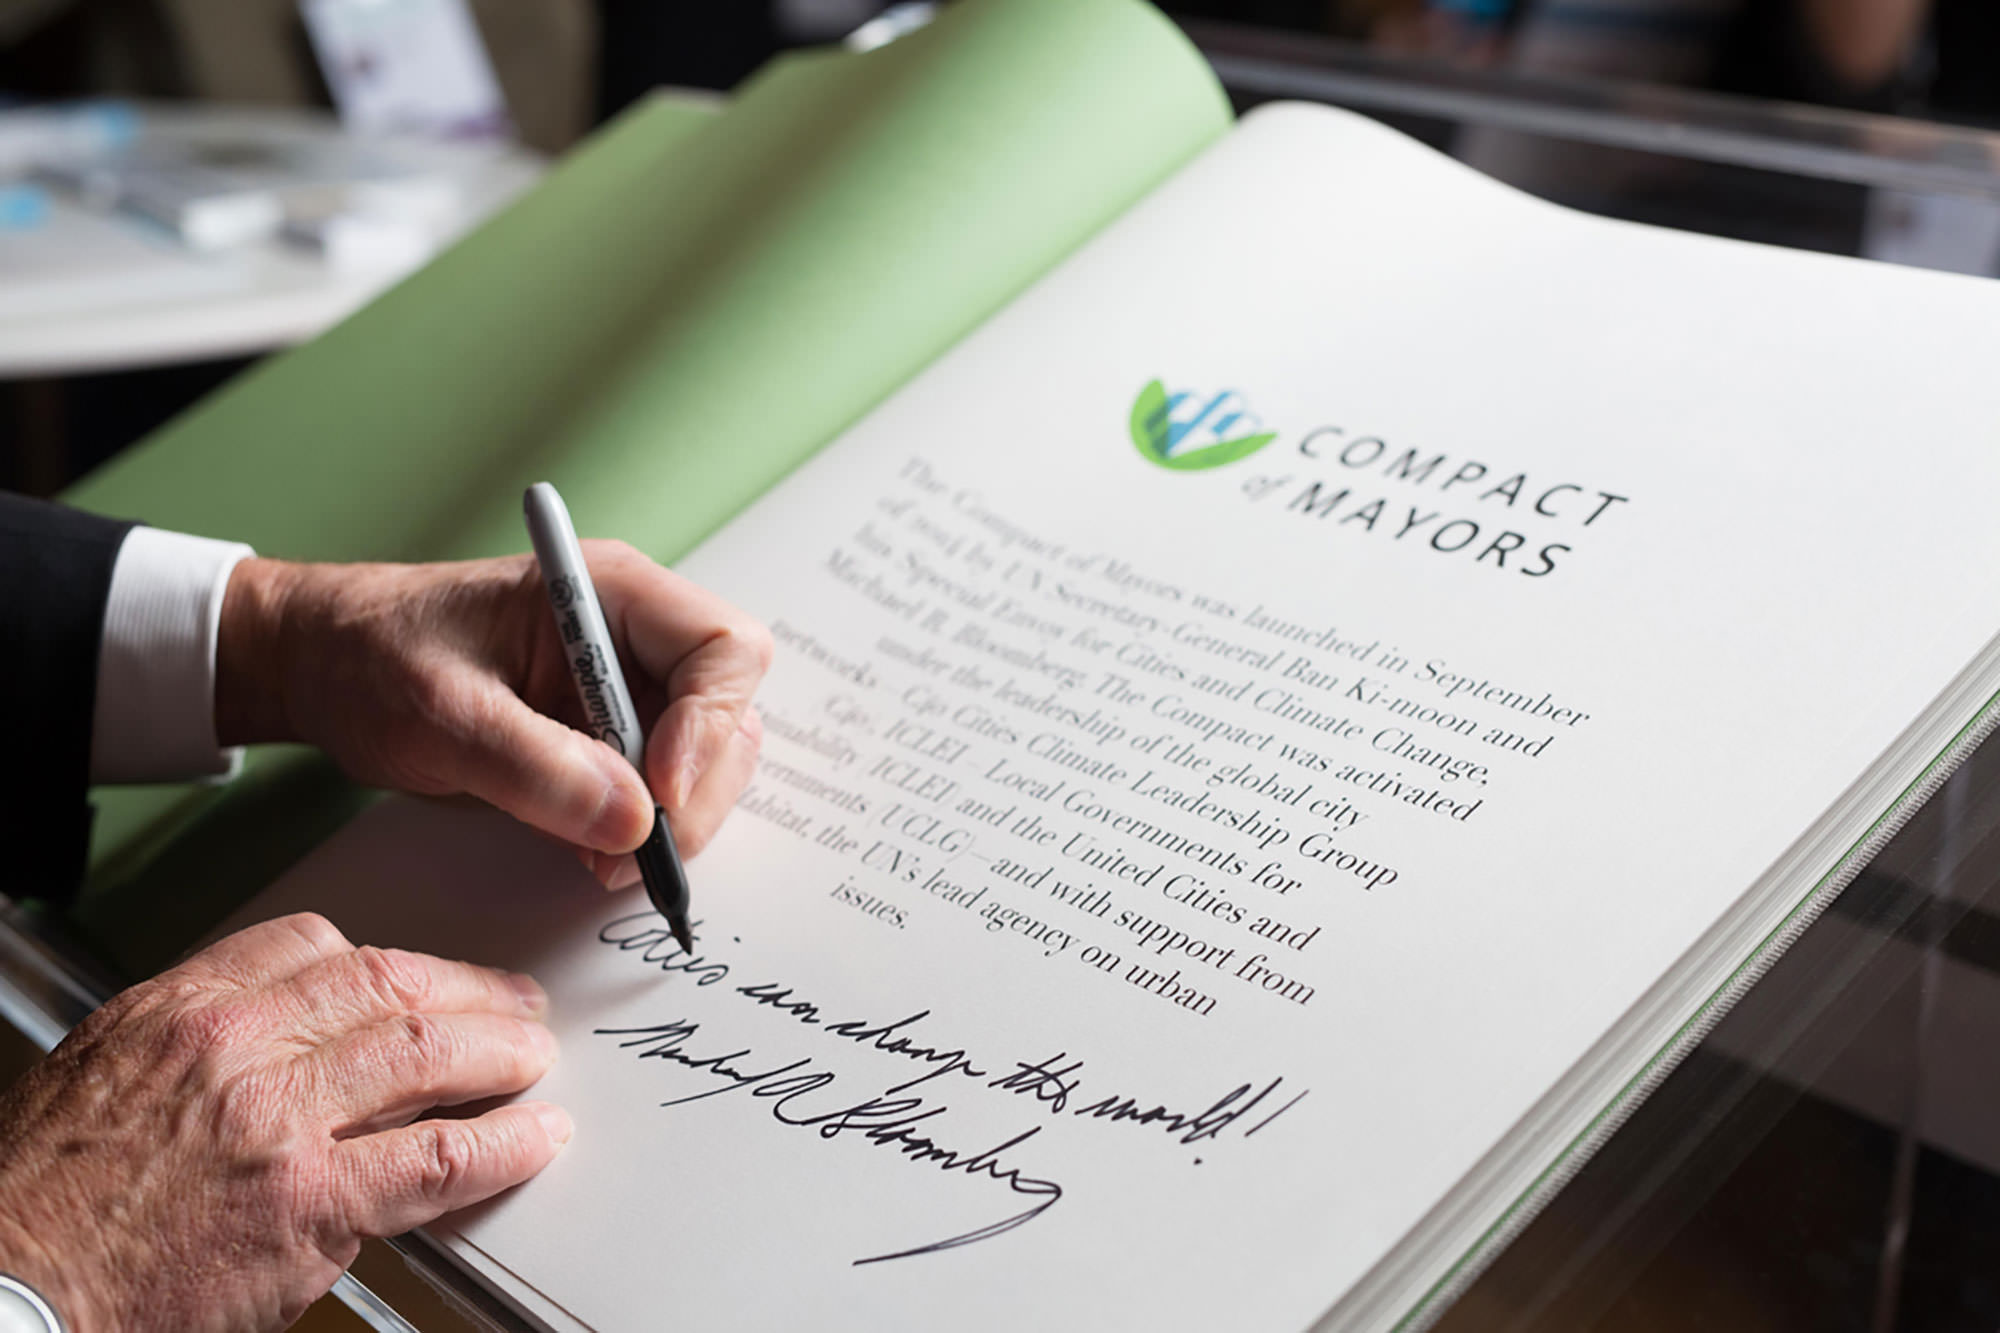 Mike Bloomberg signs the Compact of Mayors commitment book at the Climate Summit for Local Leaders in Paris